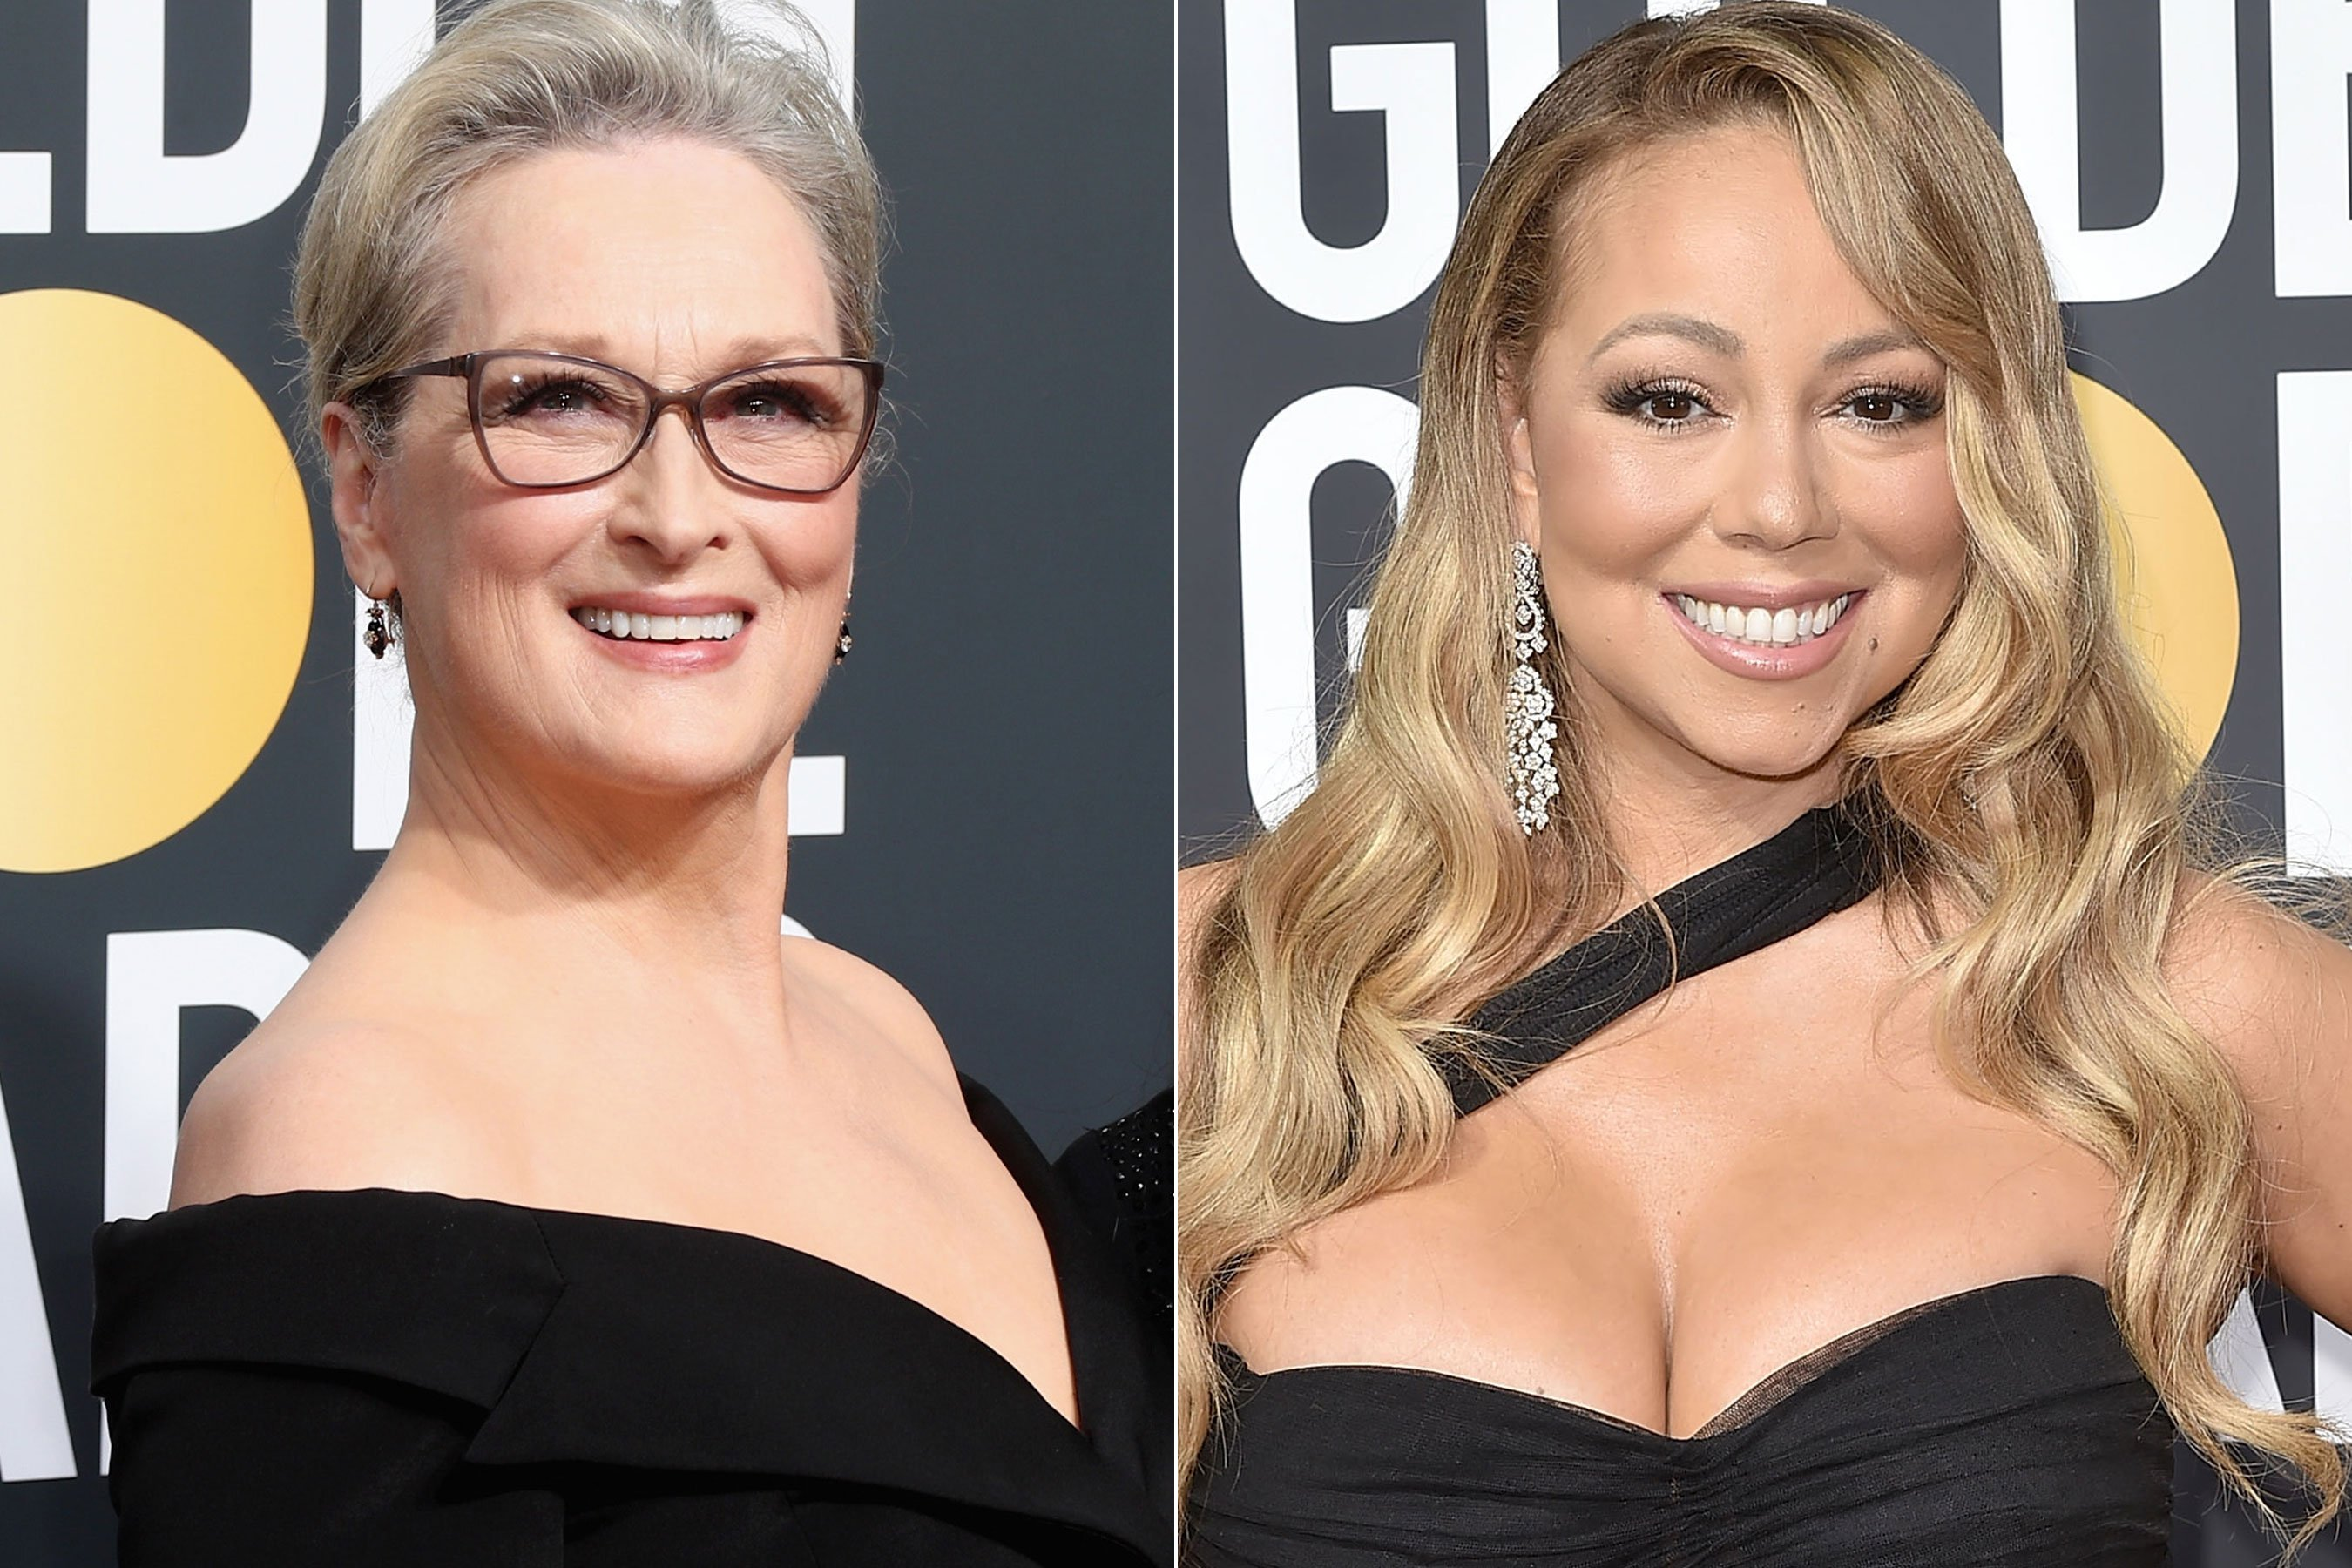 Meryl Streep jokes about Mariah Carey at Golden Globes: 'B—- stole my seat'